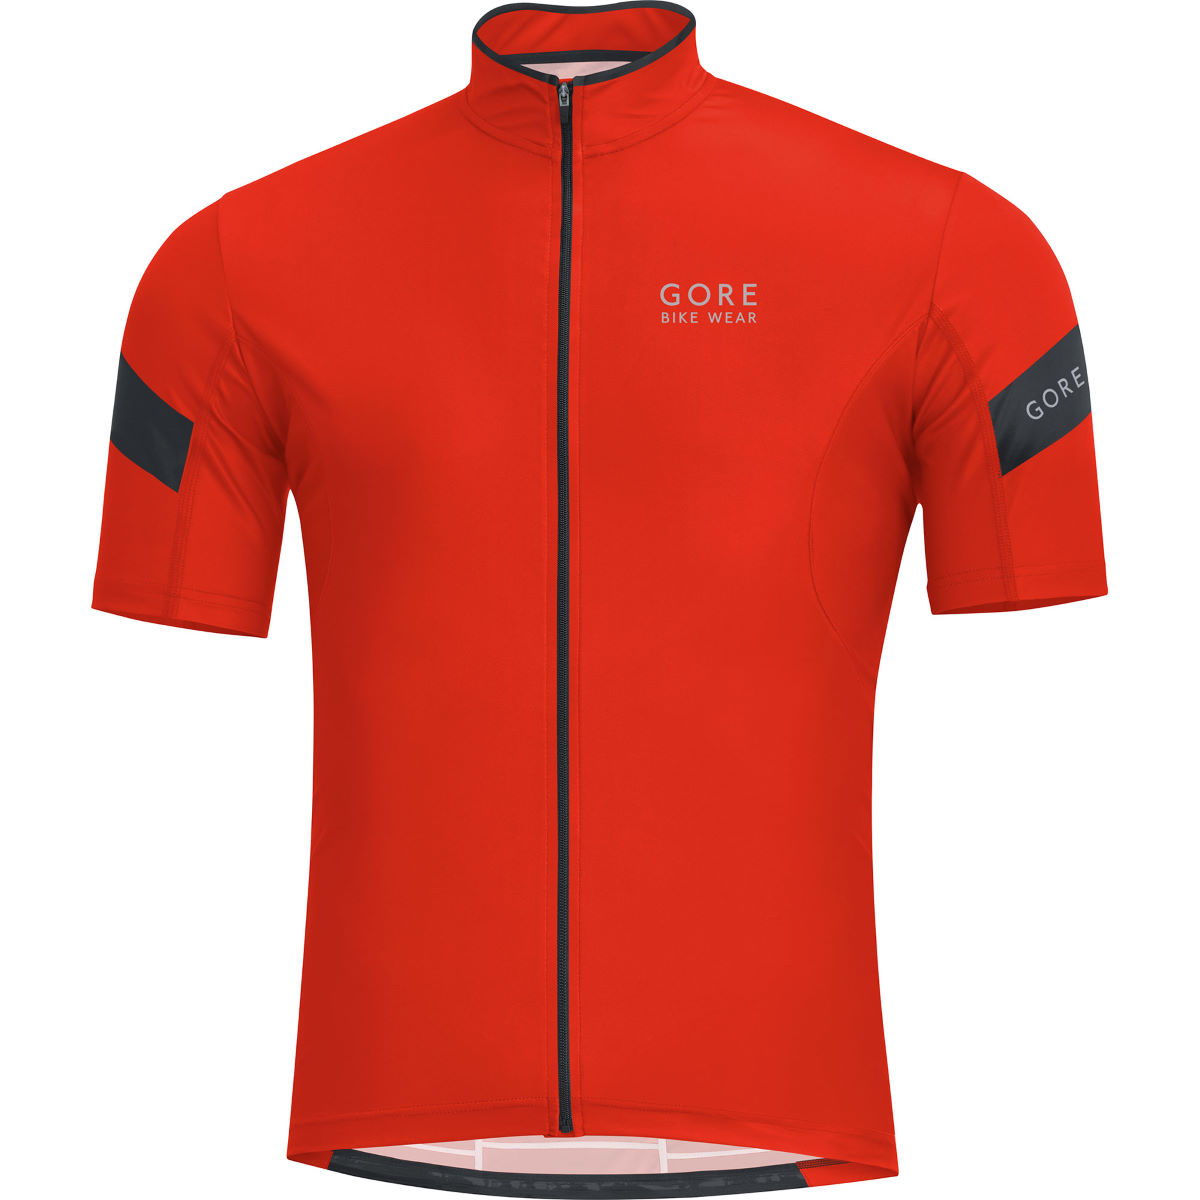 Maillot Gore Bike Wear Power 3.0 (manches courtes) - M Orange/Black